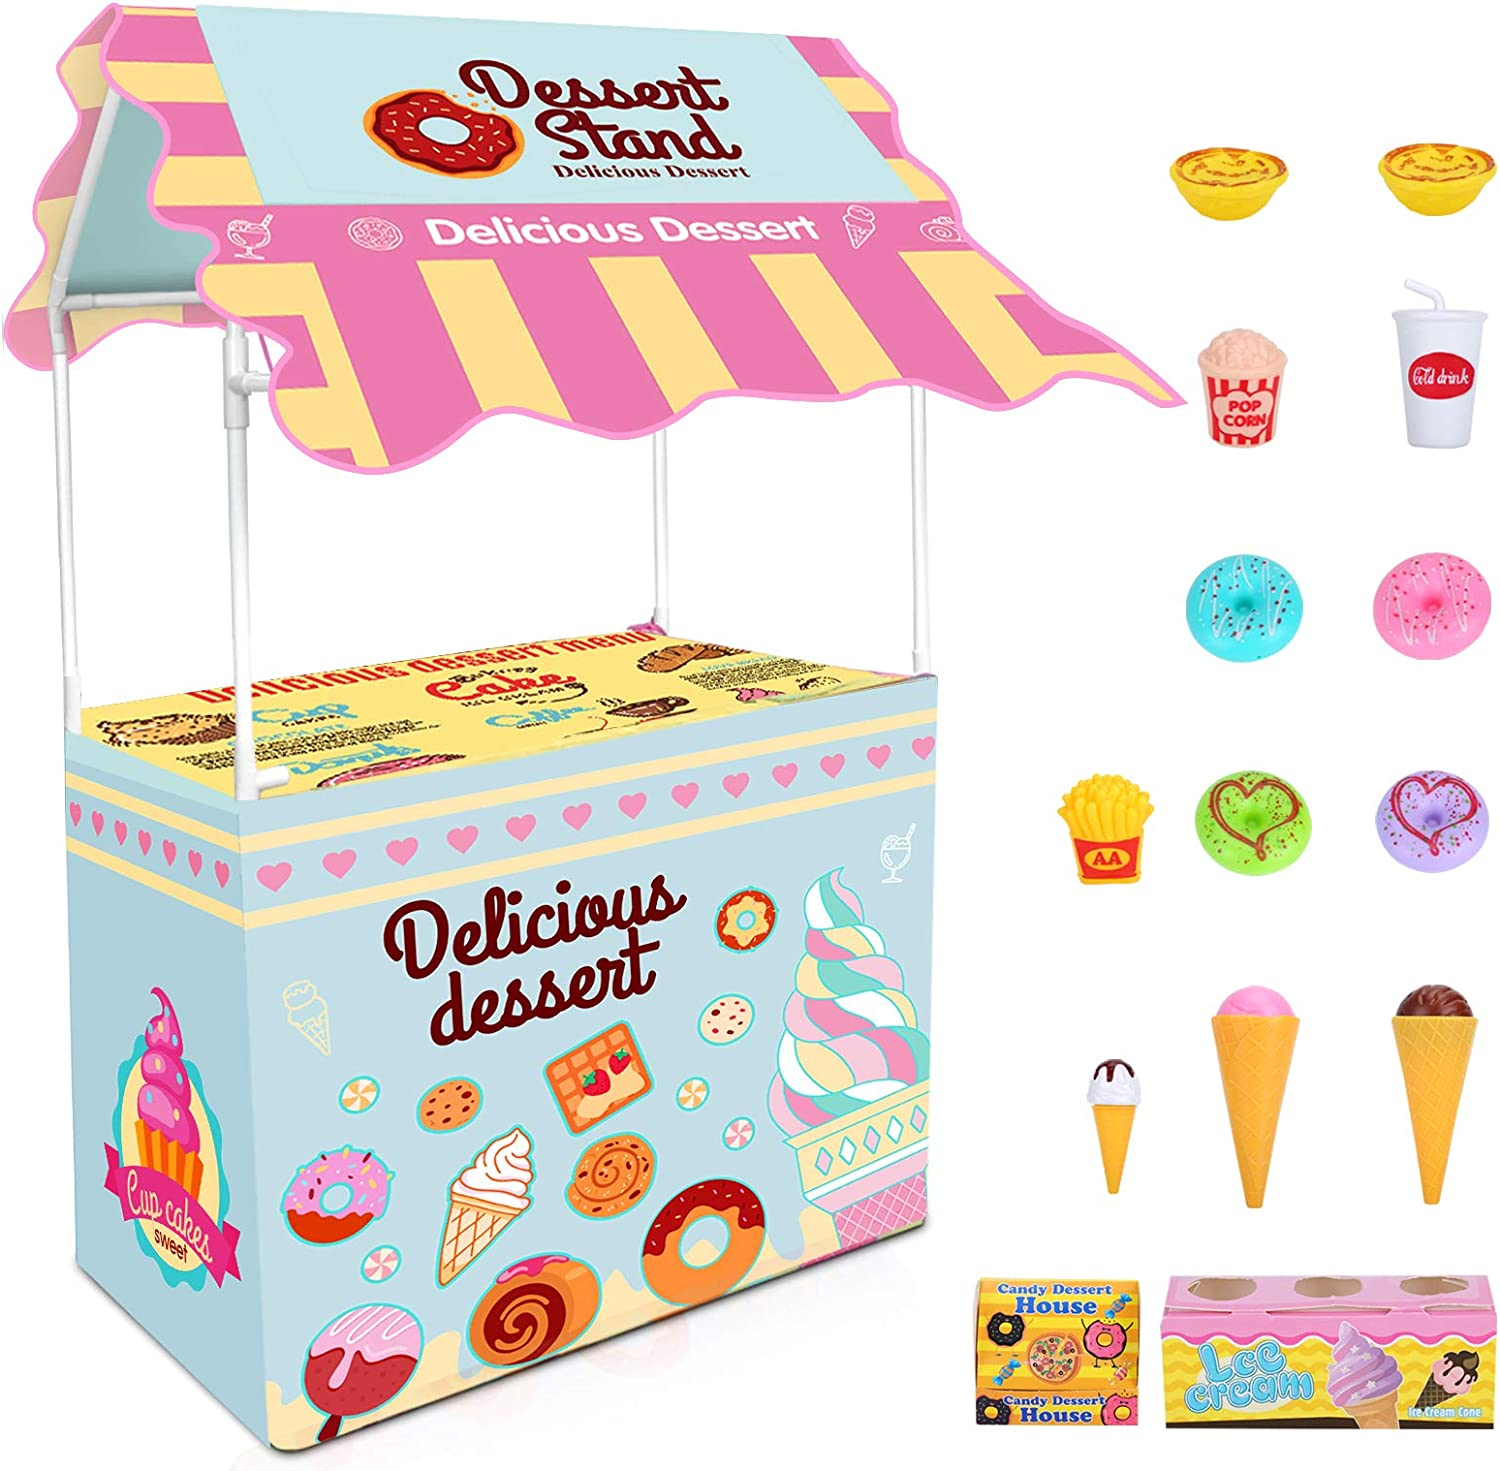 ISKYDRAW Ice Cream Cart - Kids Ice Cream Stand Shop Playset Toy Role Play Educational Colorful Pretend Play Food Business Cart Playstand Indoor Outside Playhouse Toy Present for Girls, Kids Ages 3+